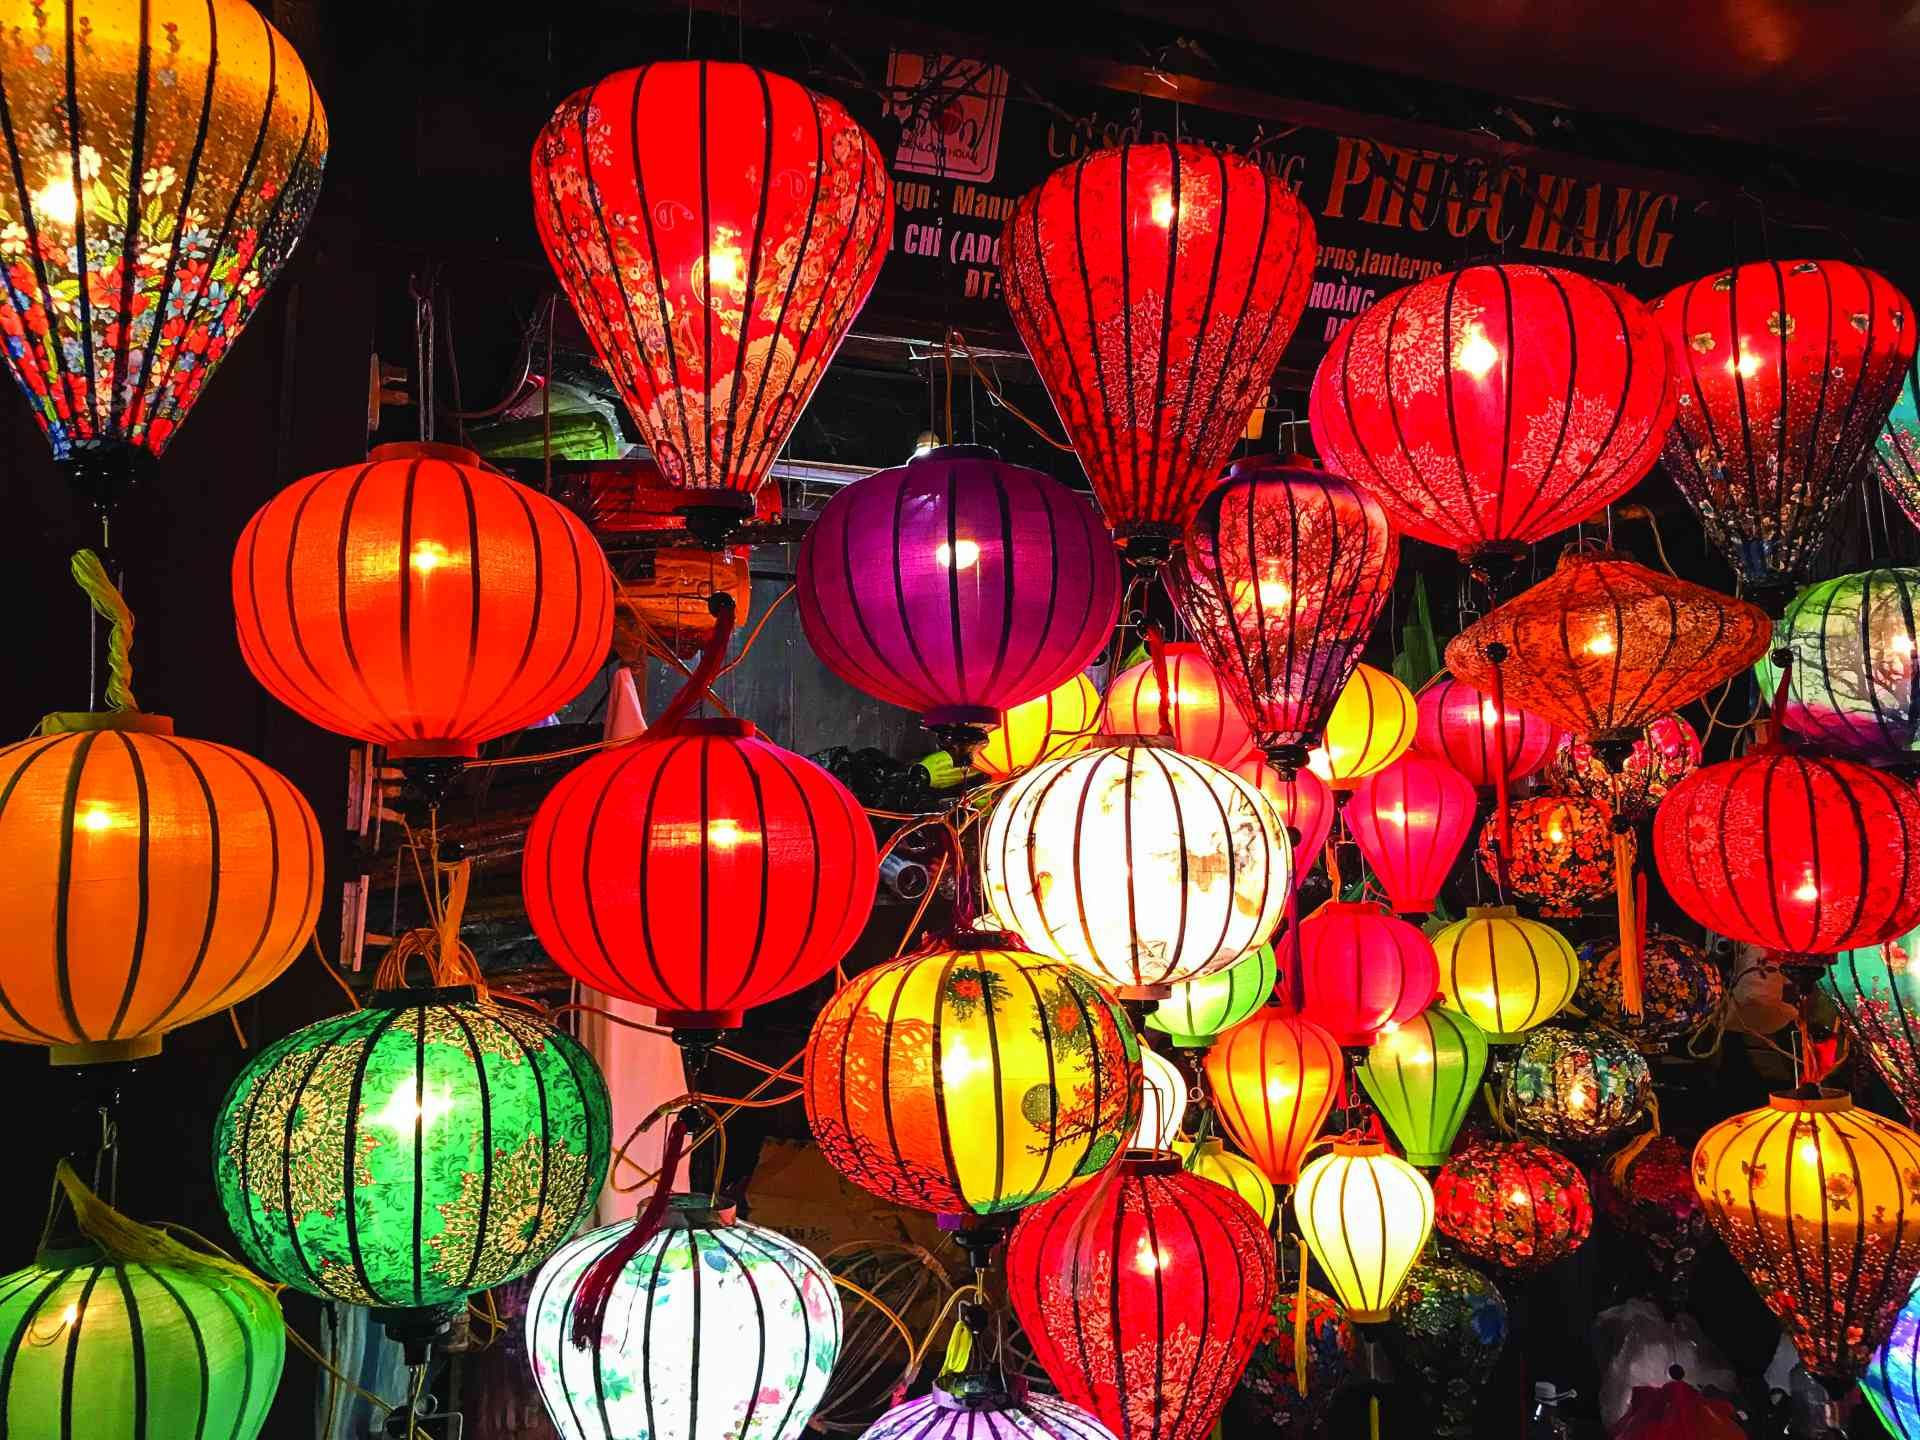 Lanterns in Hoi An, Vietnam by Zoe Francis